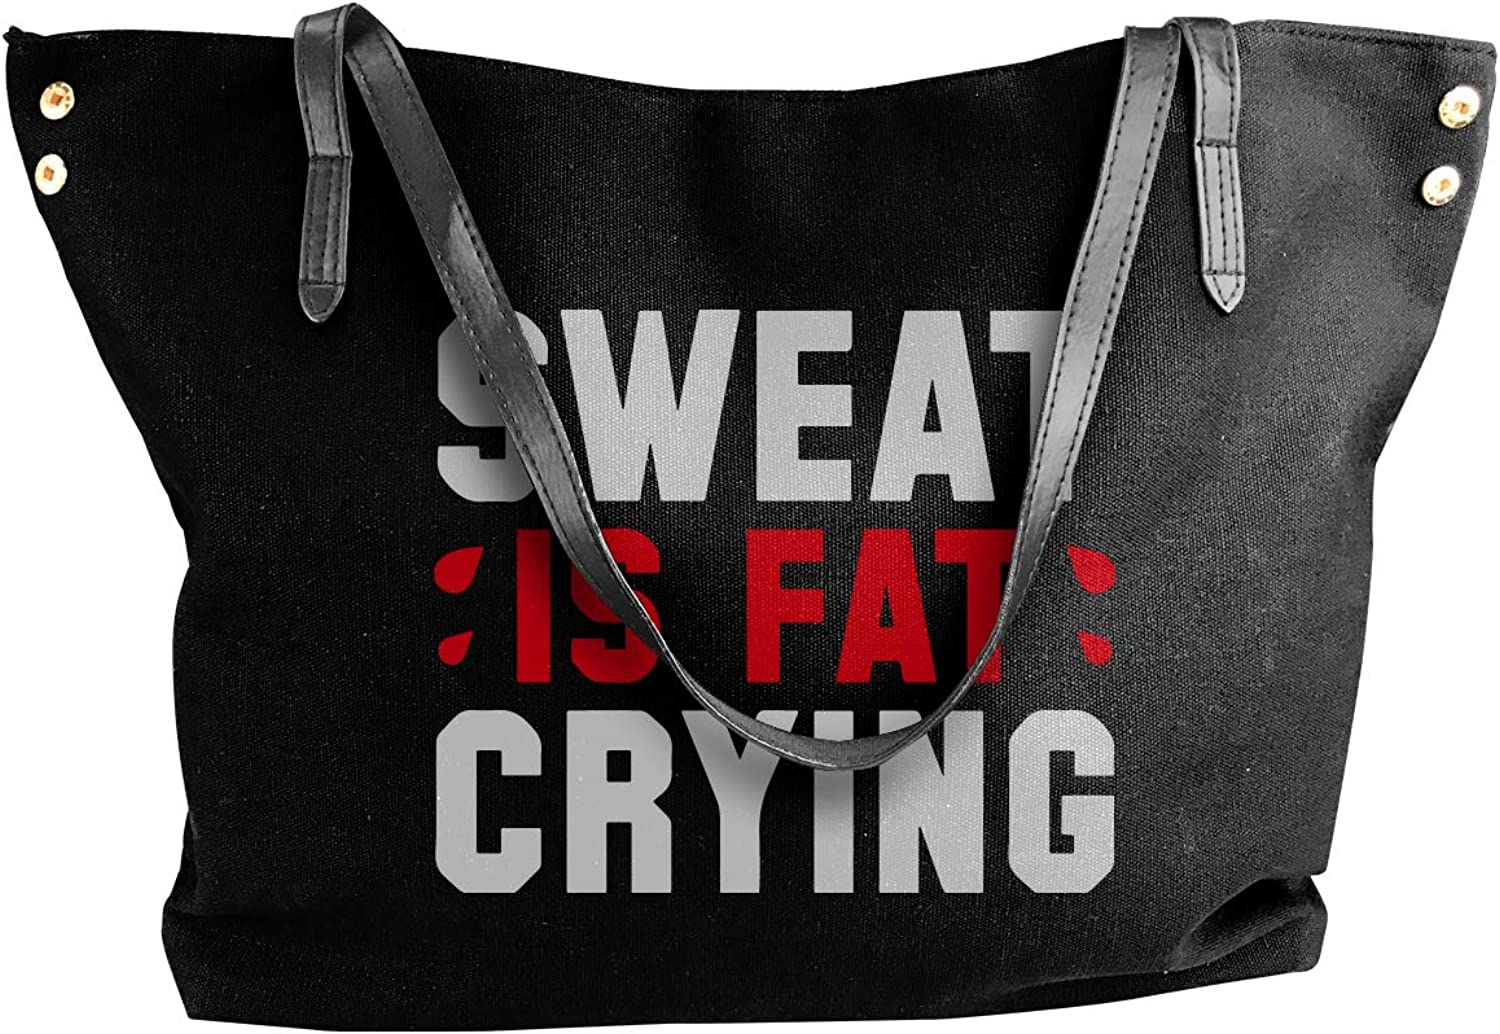 Sweat Is Fat Crying Women'S Casual Canvas Shoulder Bag For School Shoulder Tote